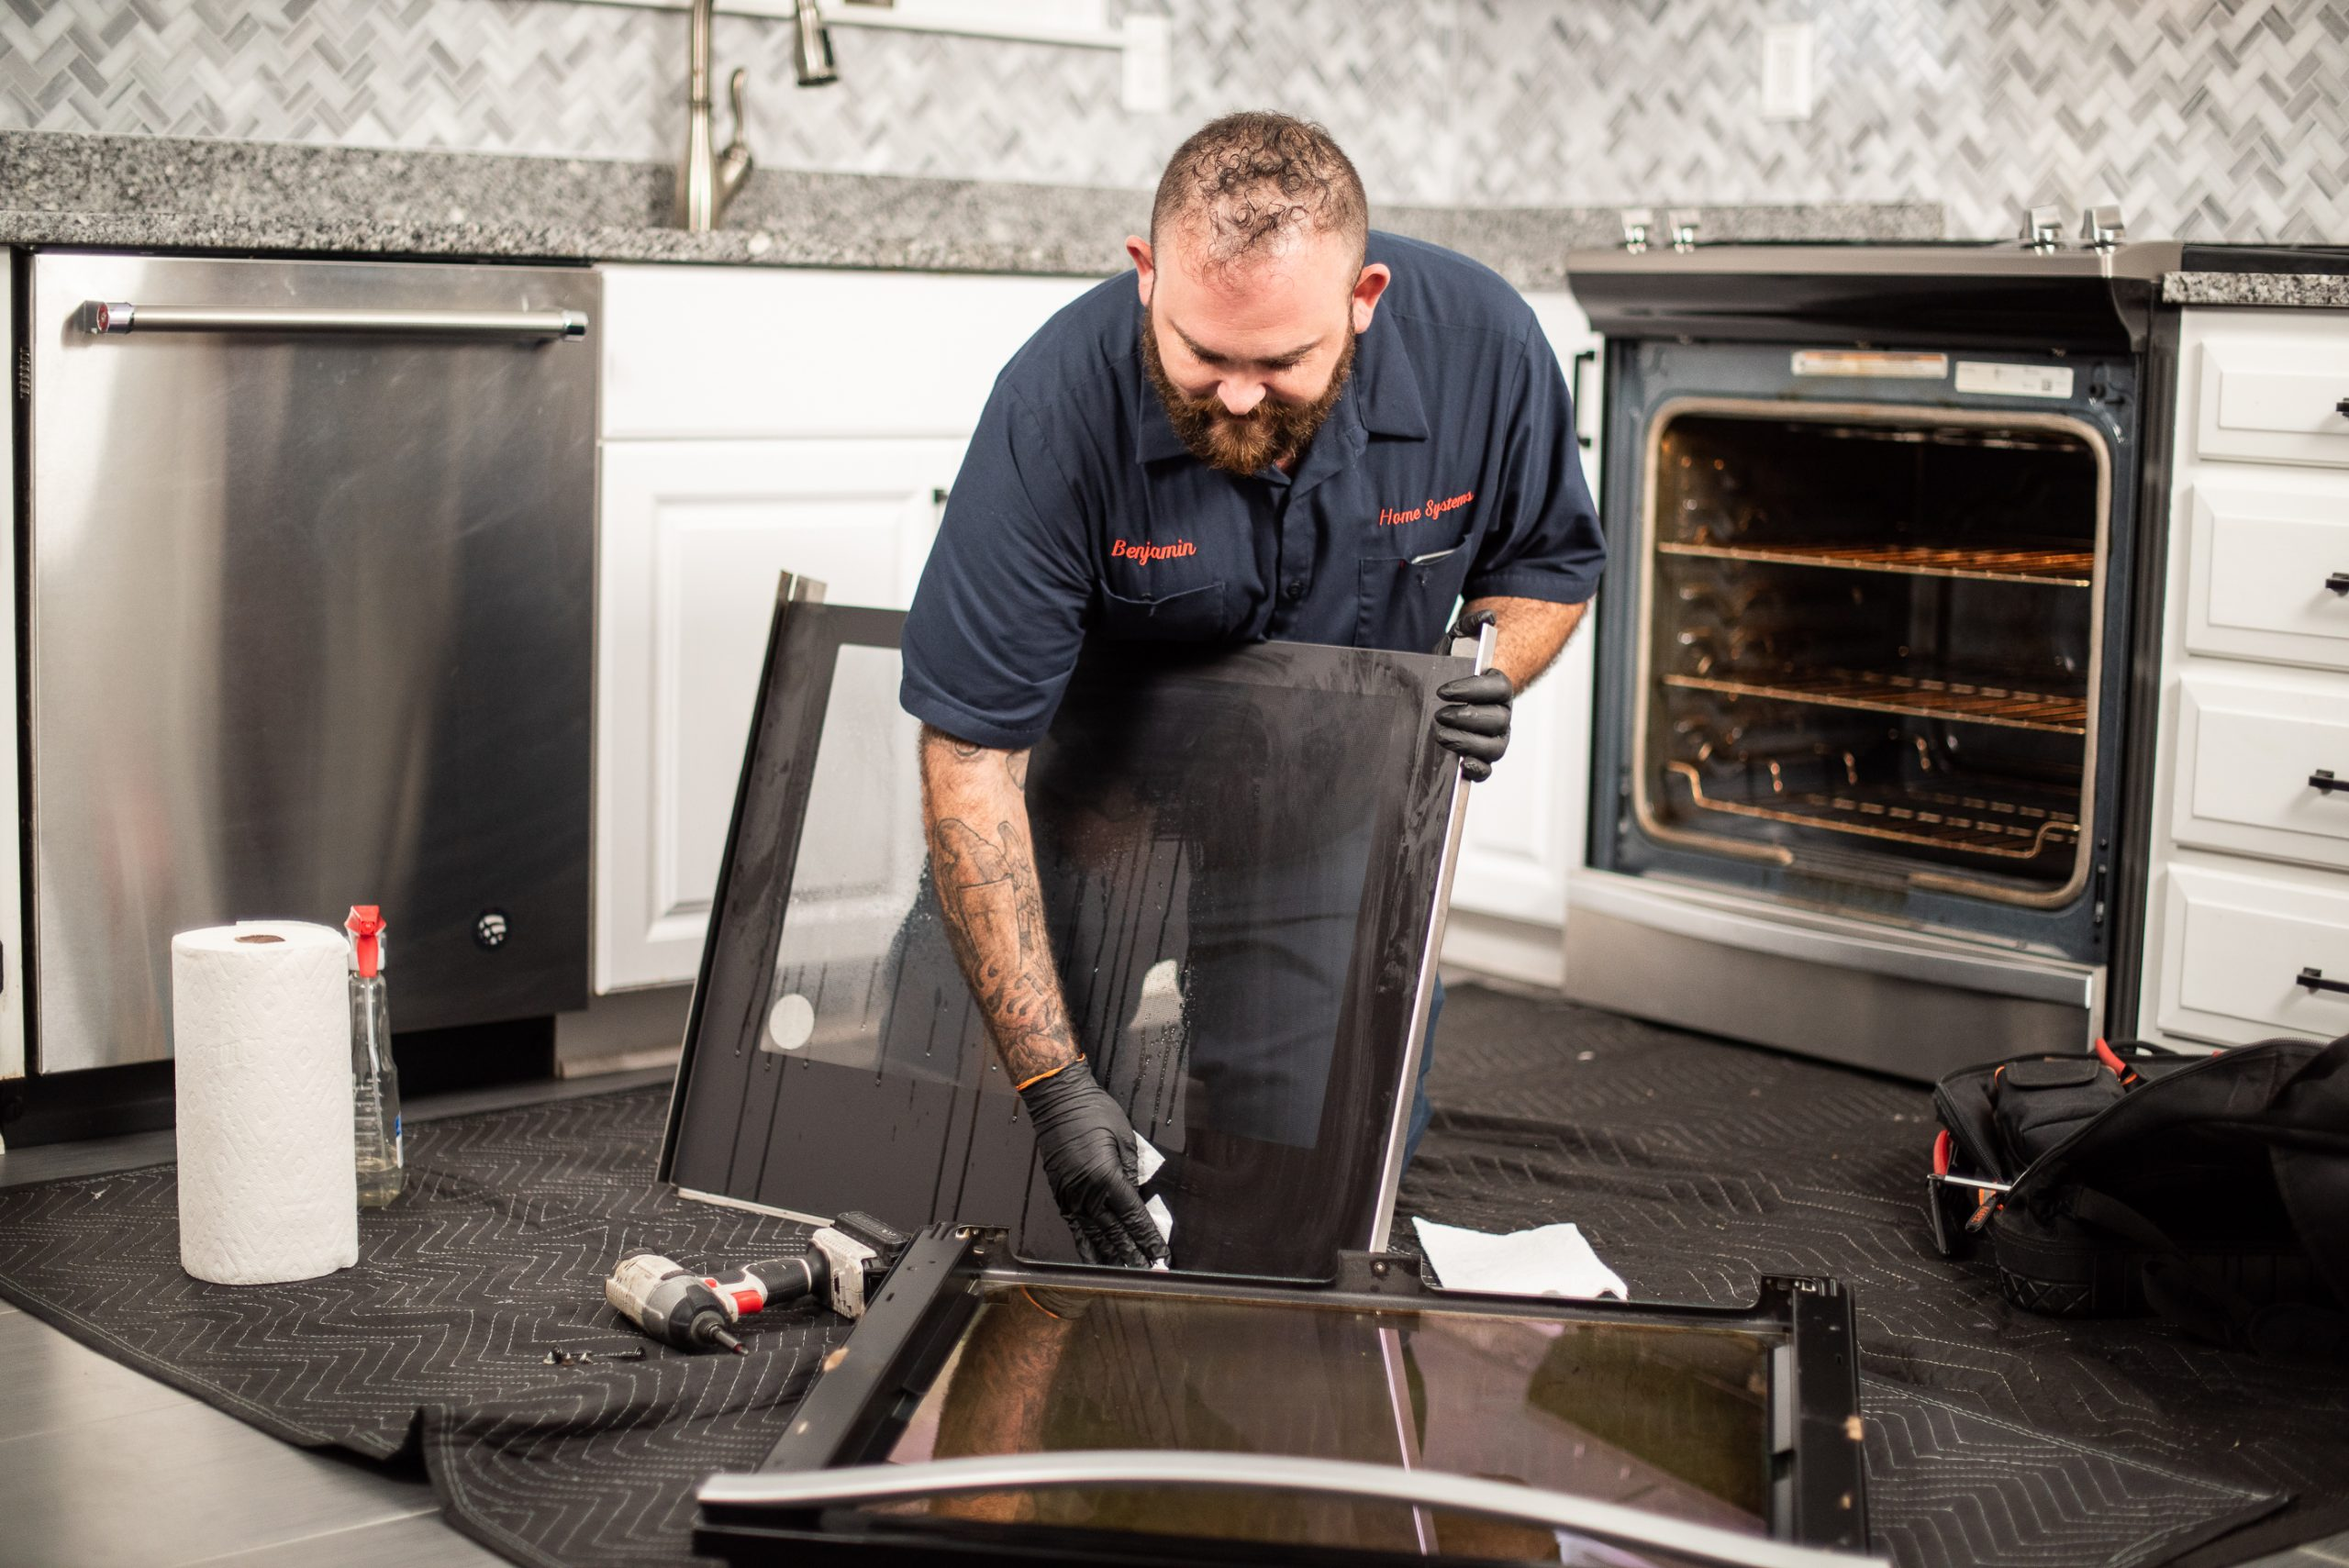 Home Systems Appliance Repair Ovens Cooktops Ranges Microwaves